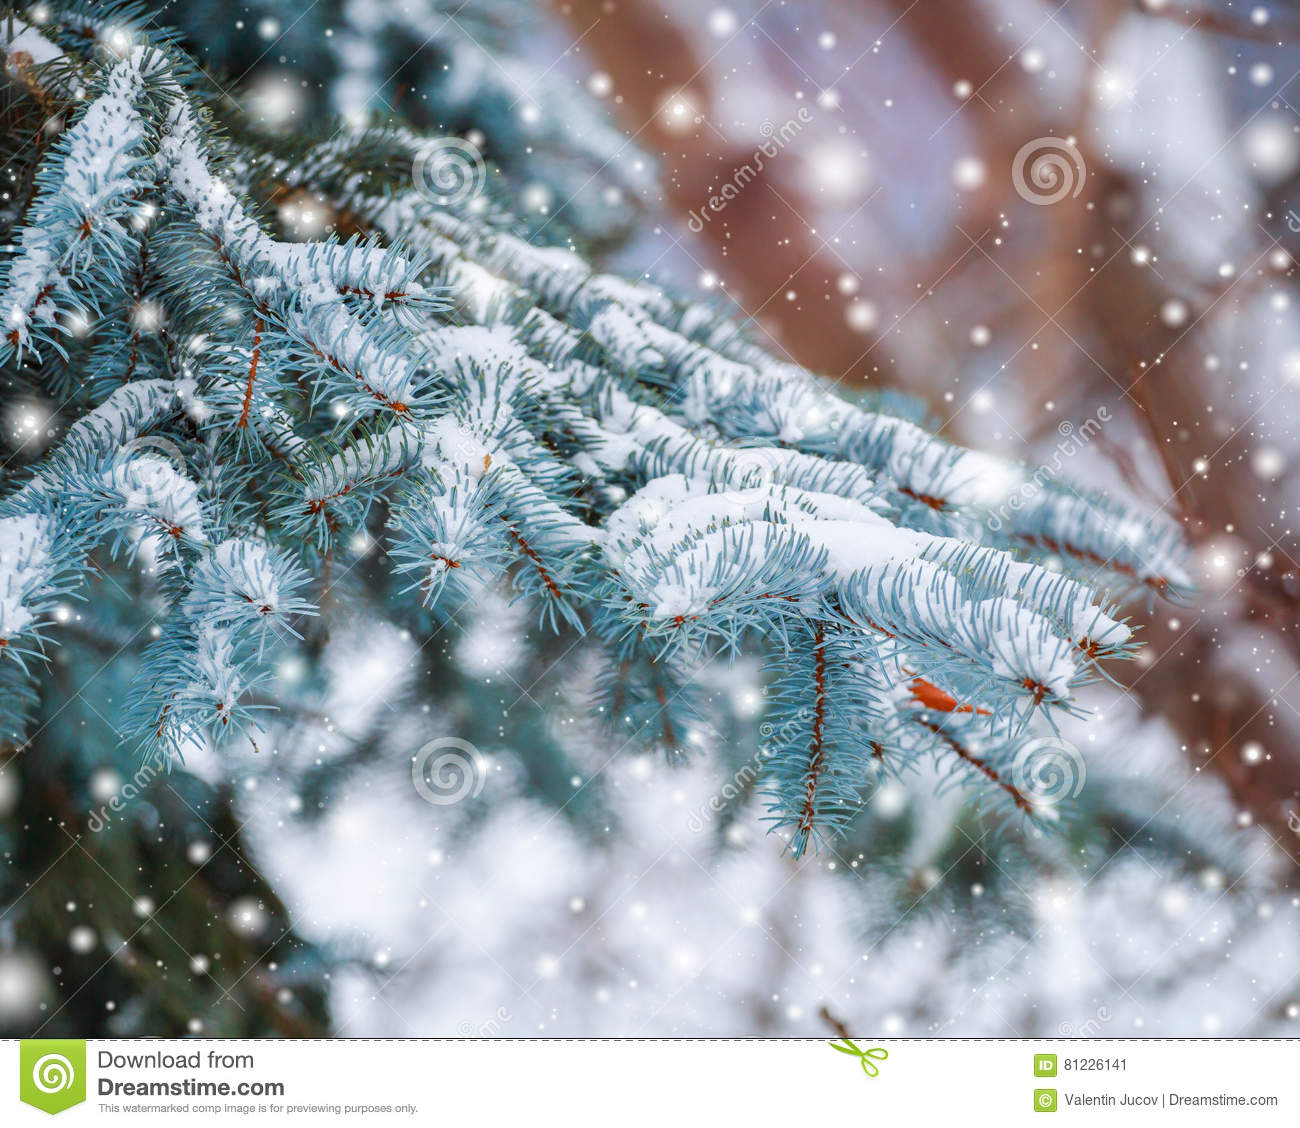 Frosty winter landscape in snowy forest. Pine branches covered with snow in cold winter weather. Christmas background with fir